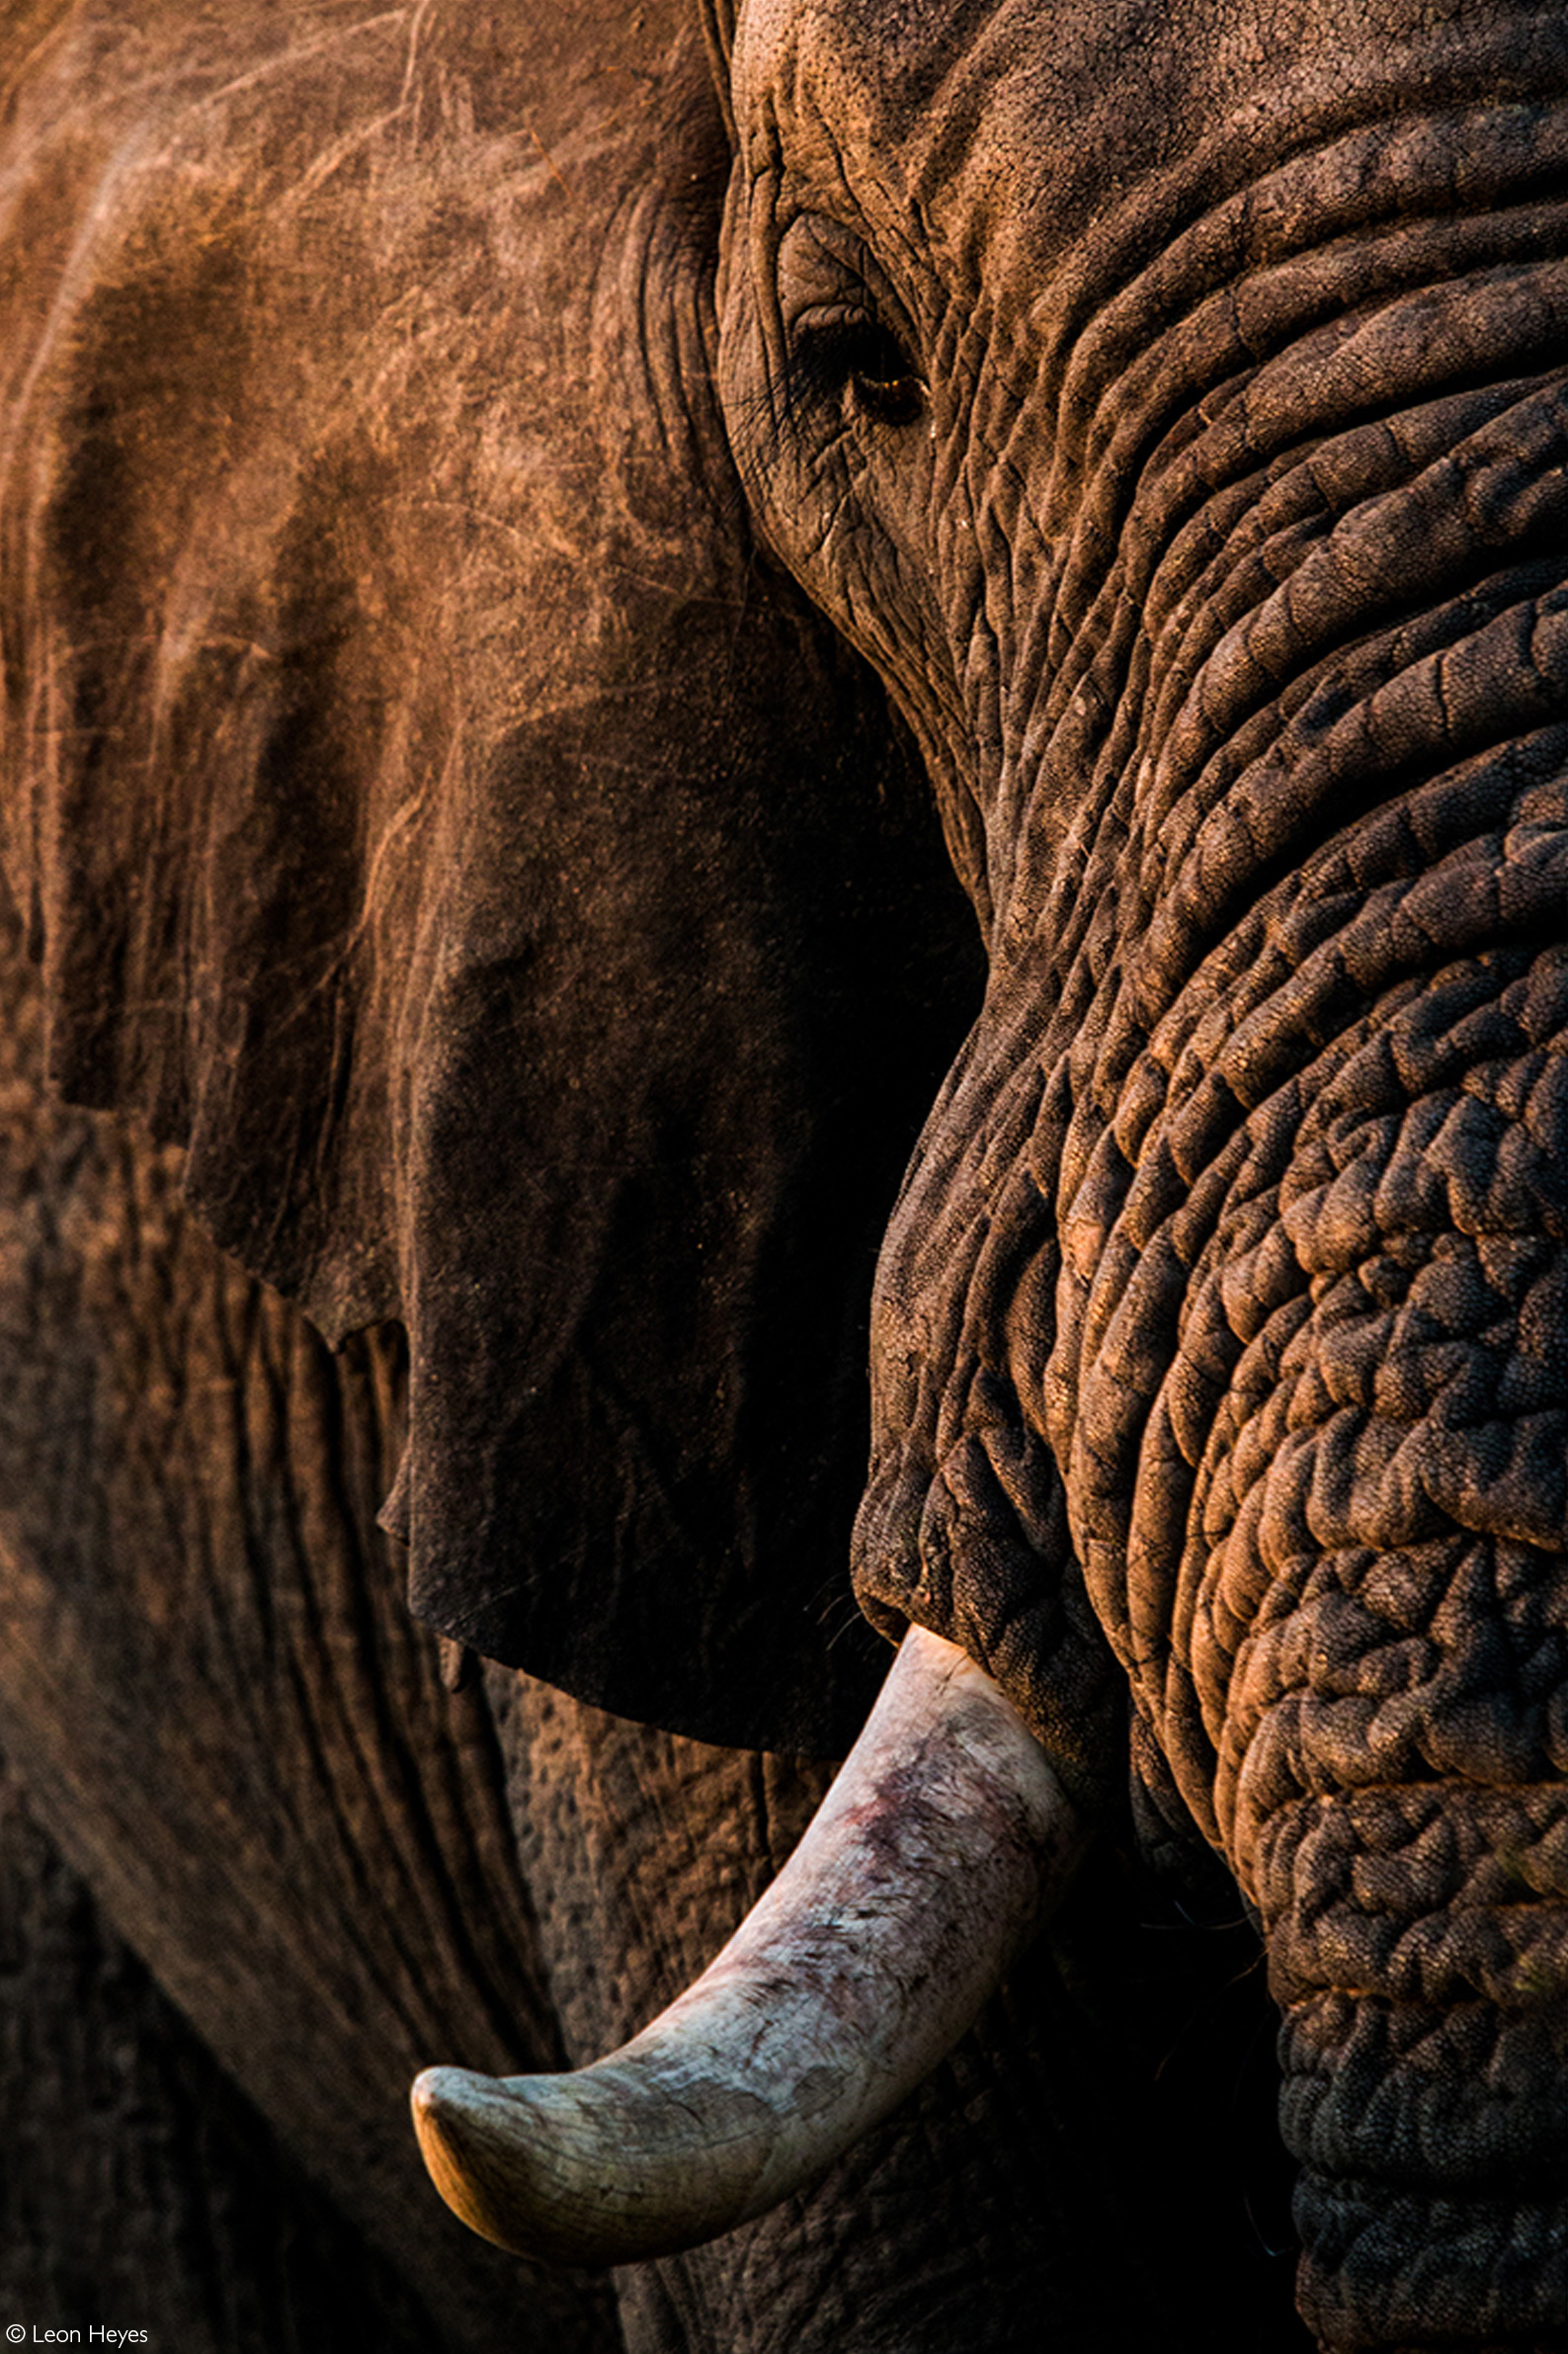 Up close and personal with an elephant. Addo Elephant National Park, South Africa © Leon Heyes